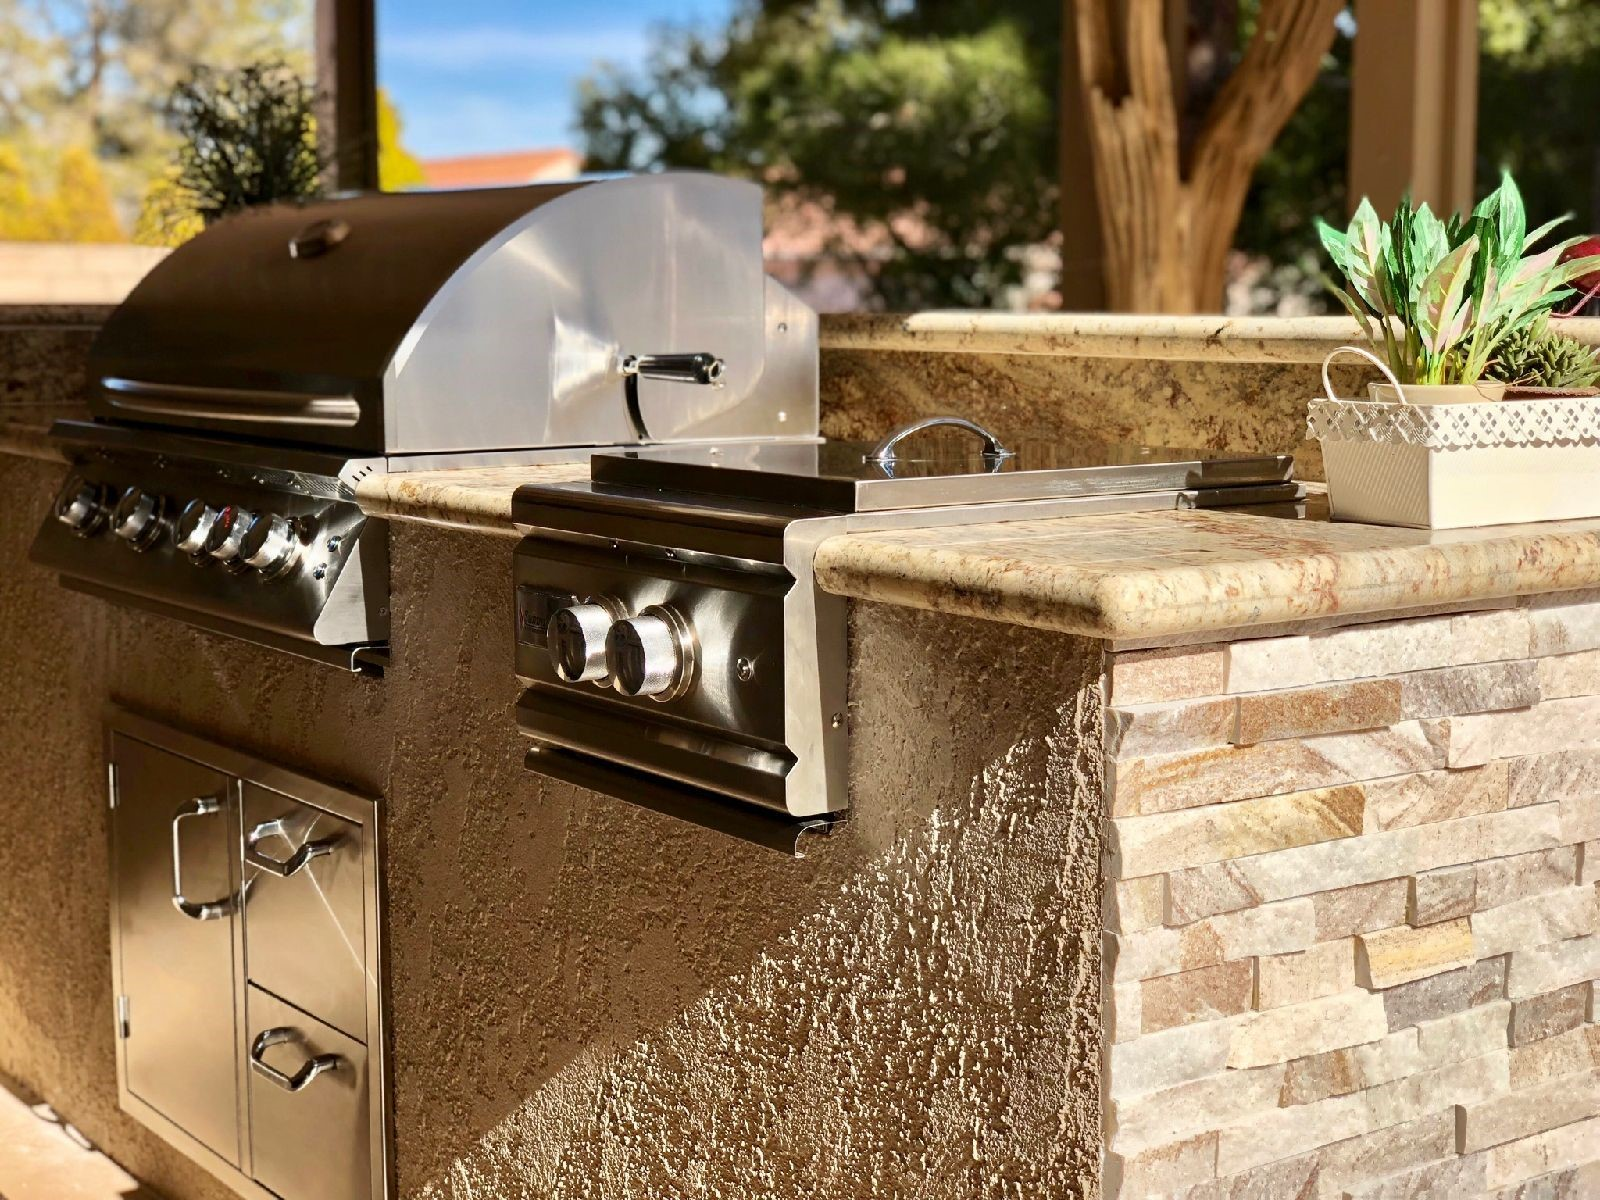 Las Vegas Outdoor Kitchen Design & Construction Services ...